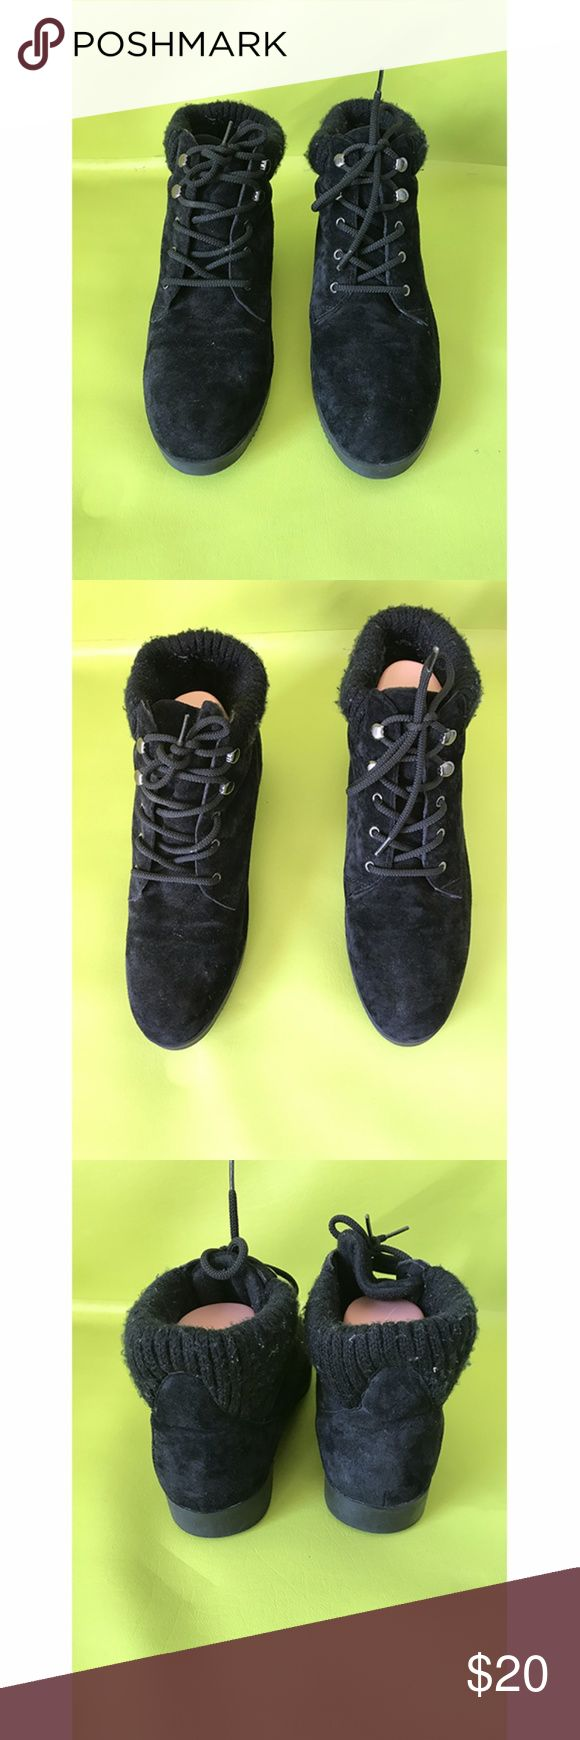 Scothgard Laced Mens Suede Low Cut Boots Sz 10M Scothgard Waltham, Laced Up, Mens Suede, Black, Mens Low Cut Boots Shoes   Free shipping on orders over $75 Scotchgard Shoes Boots